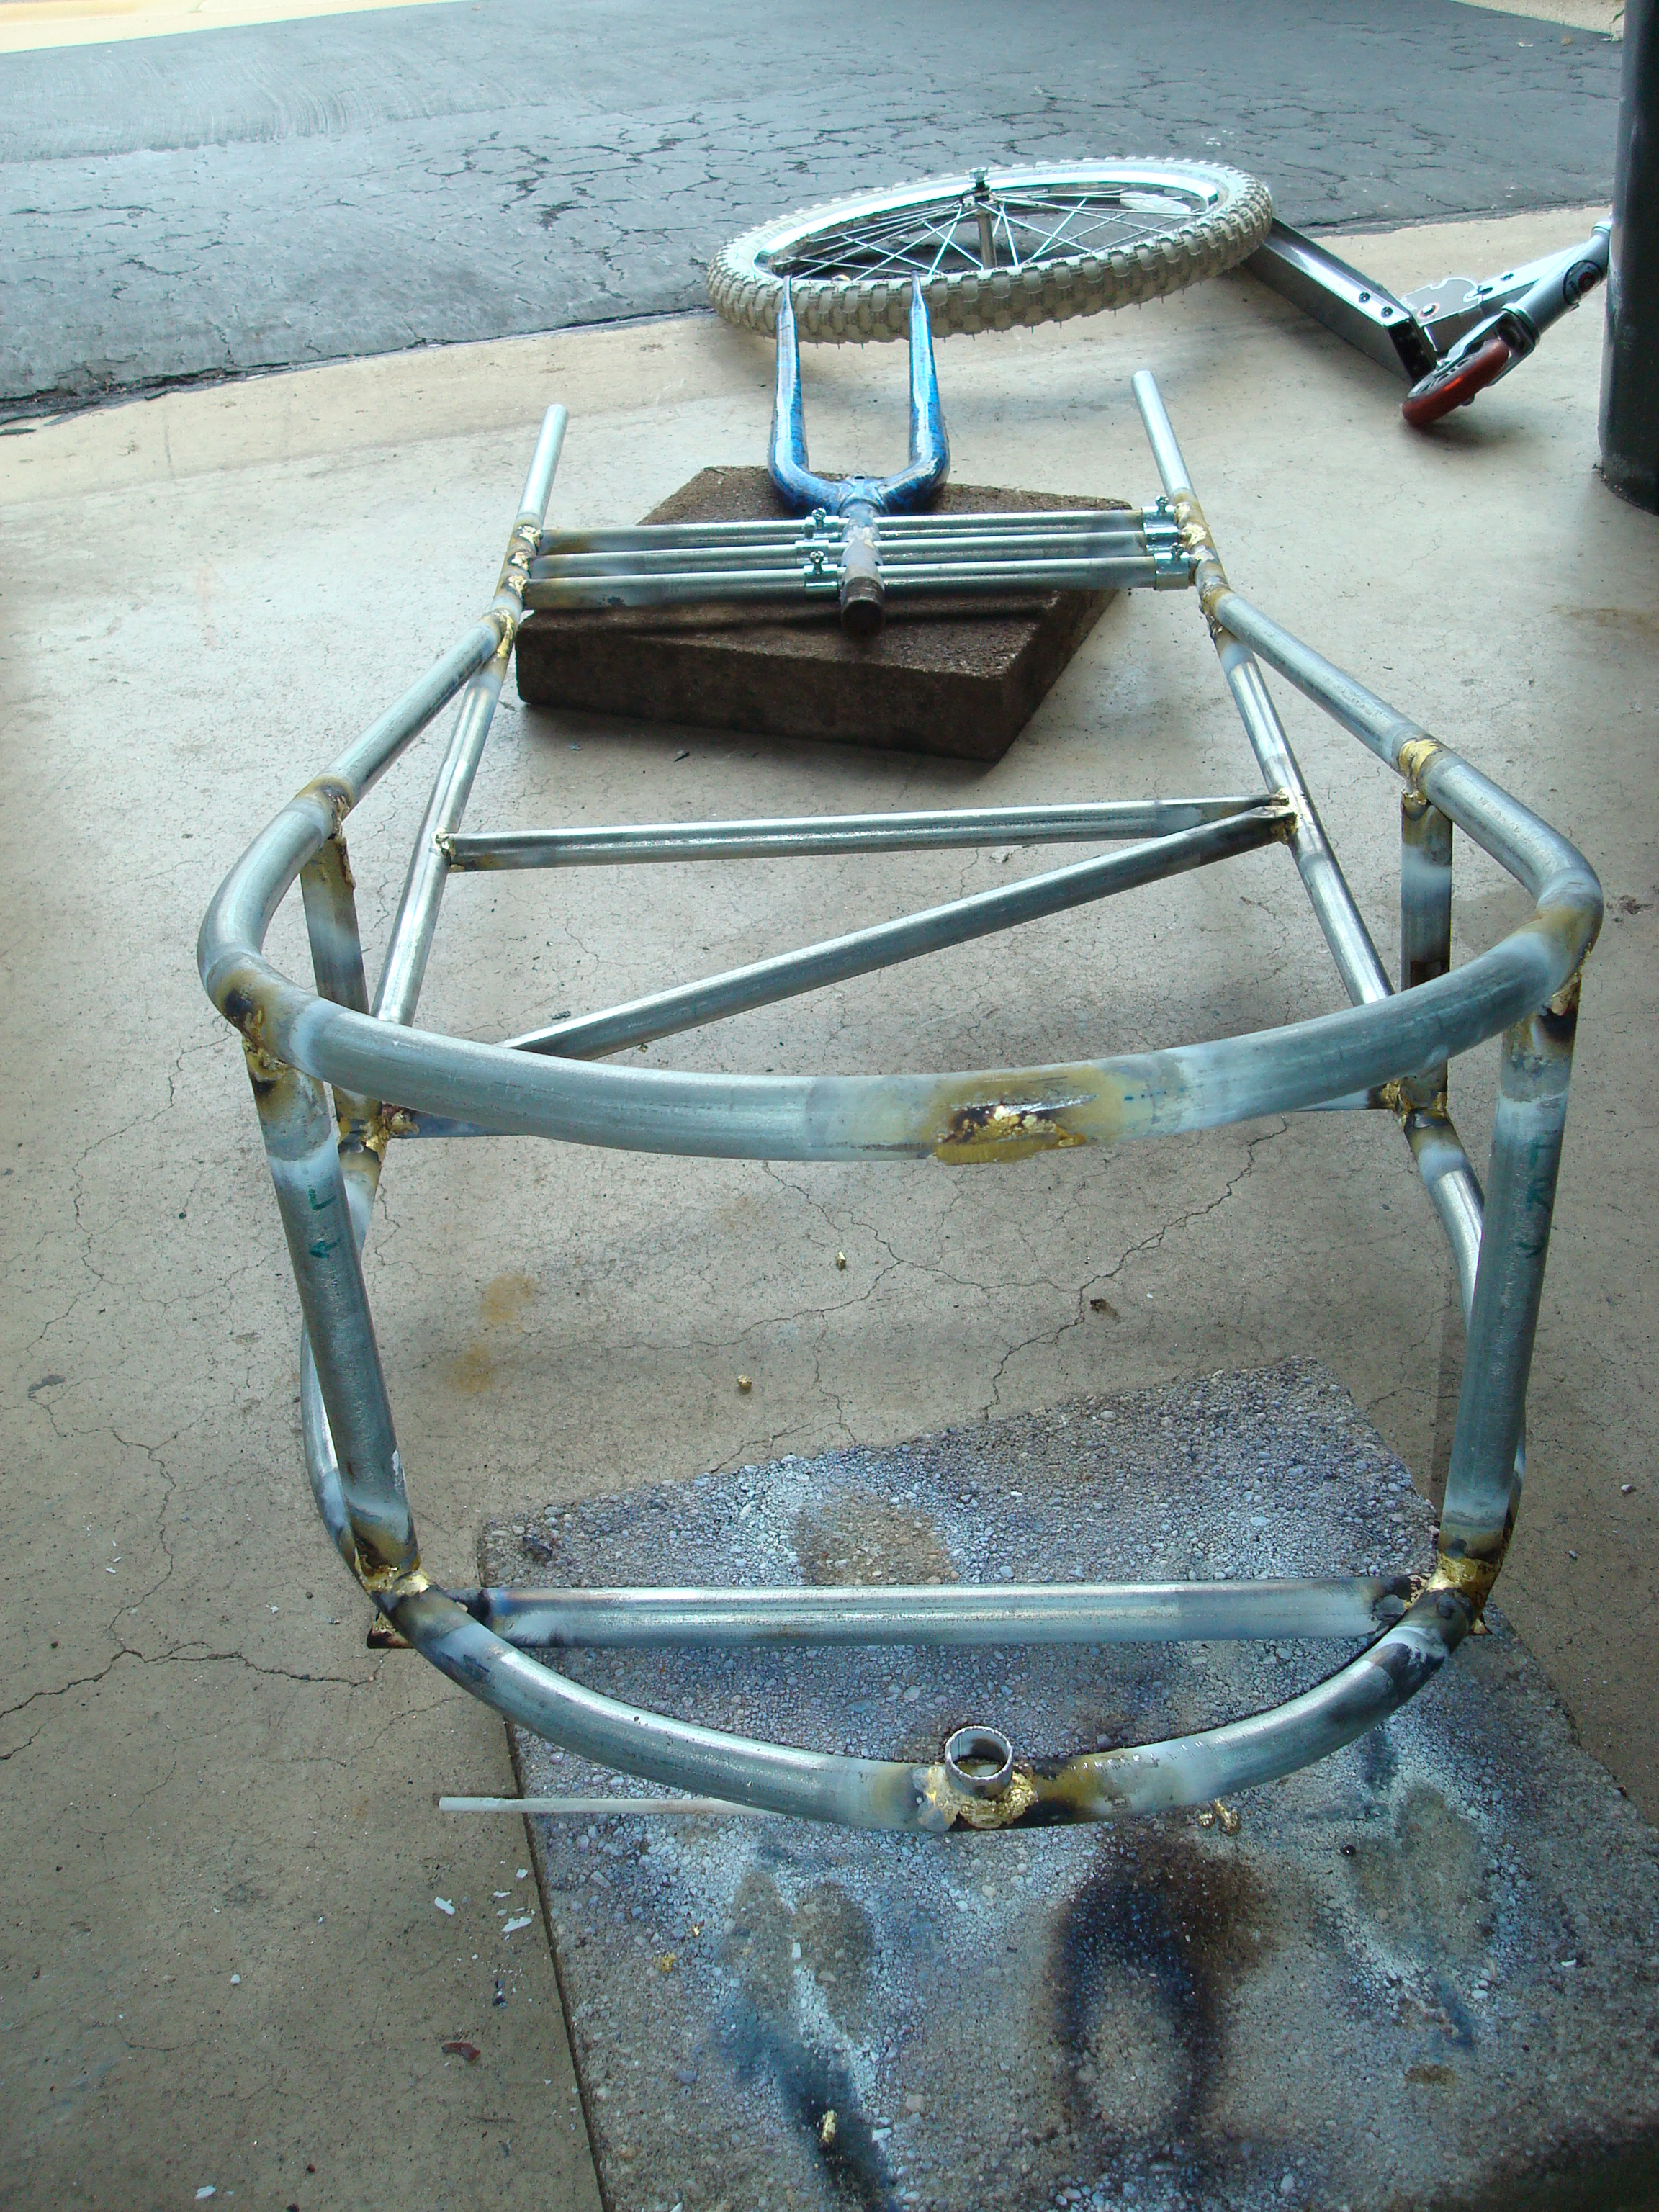 Picture of Attaching the Top and Bottom Frames